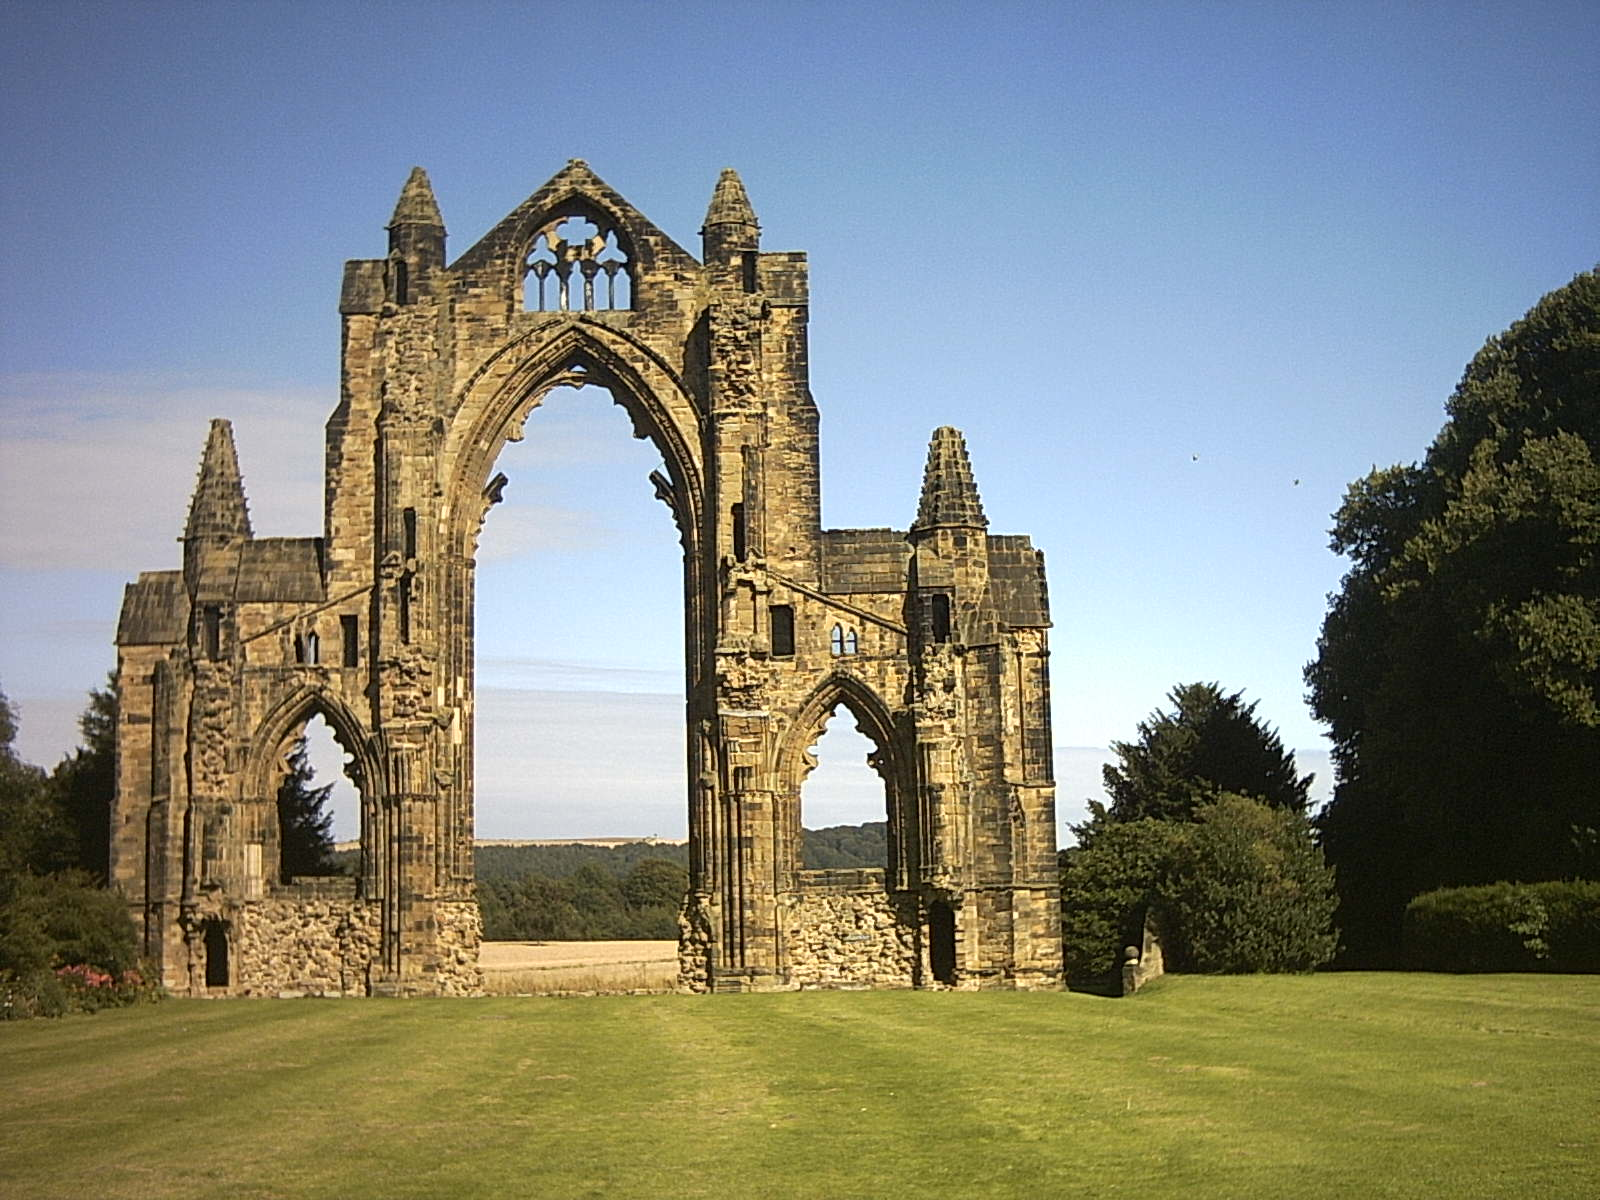 http://upload.wikimedia.org/wikipedia/commons/d/d1/Gisborough_Priory_%28nez202%29.jpg